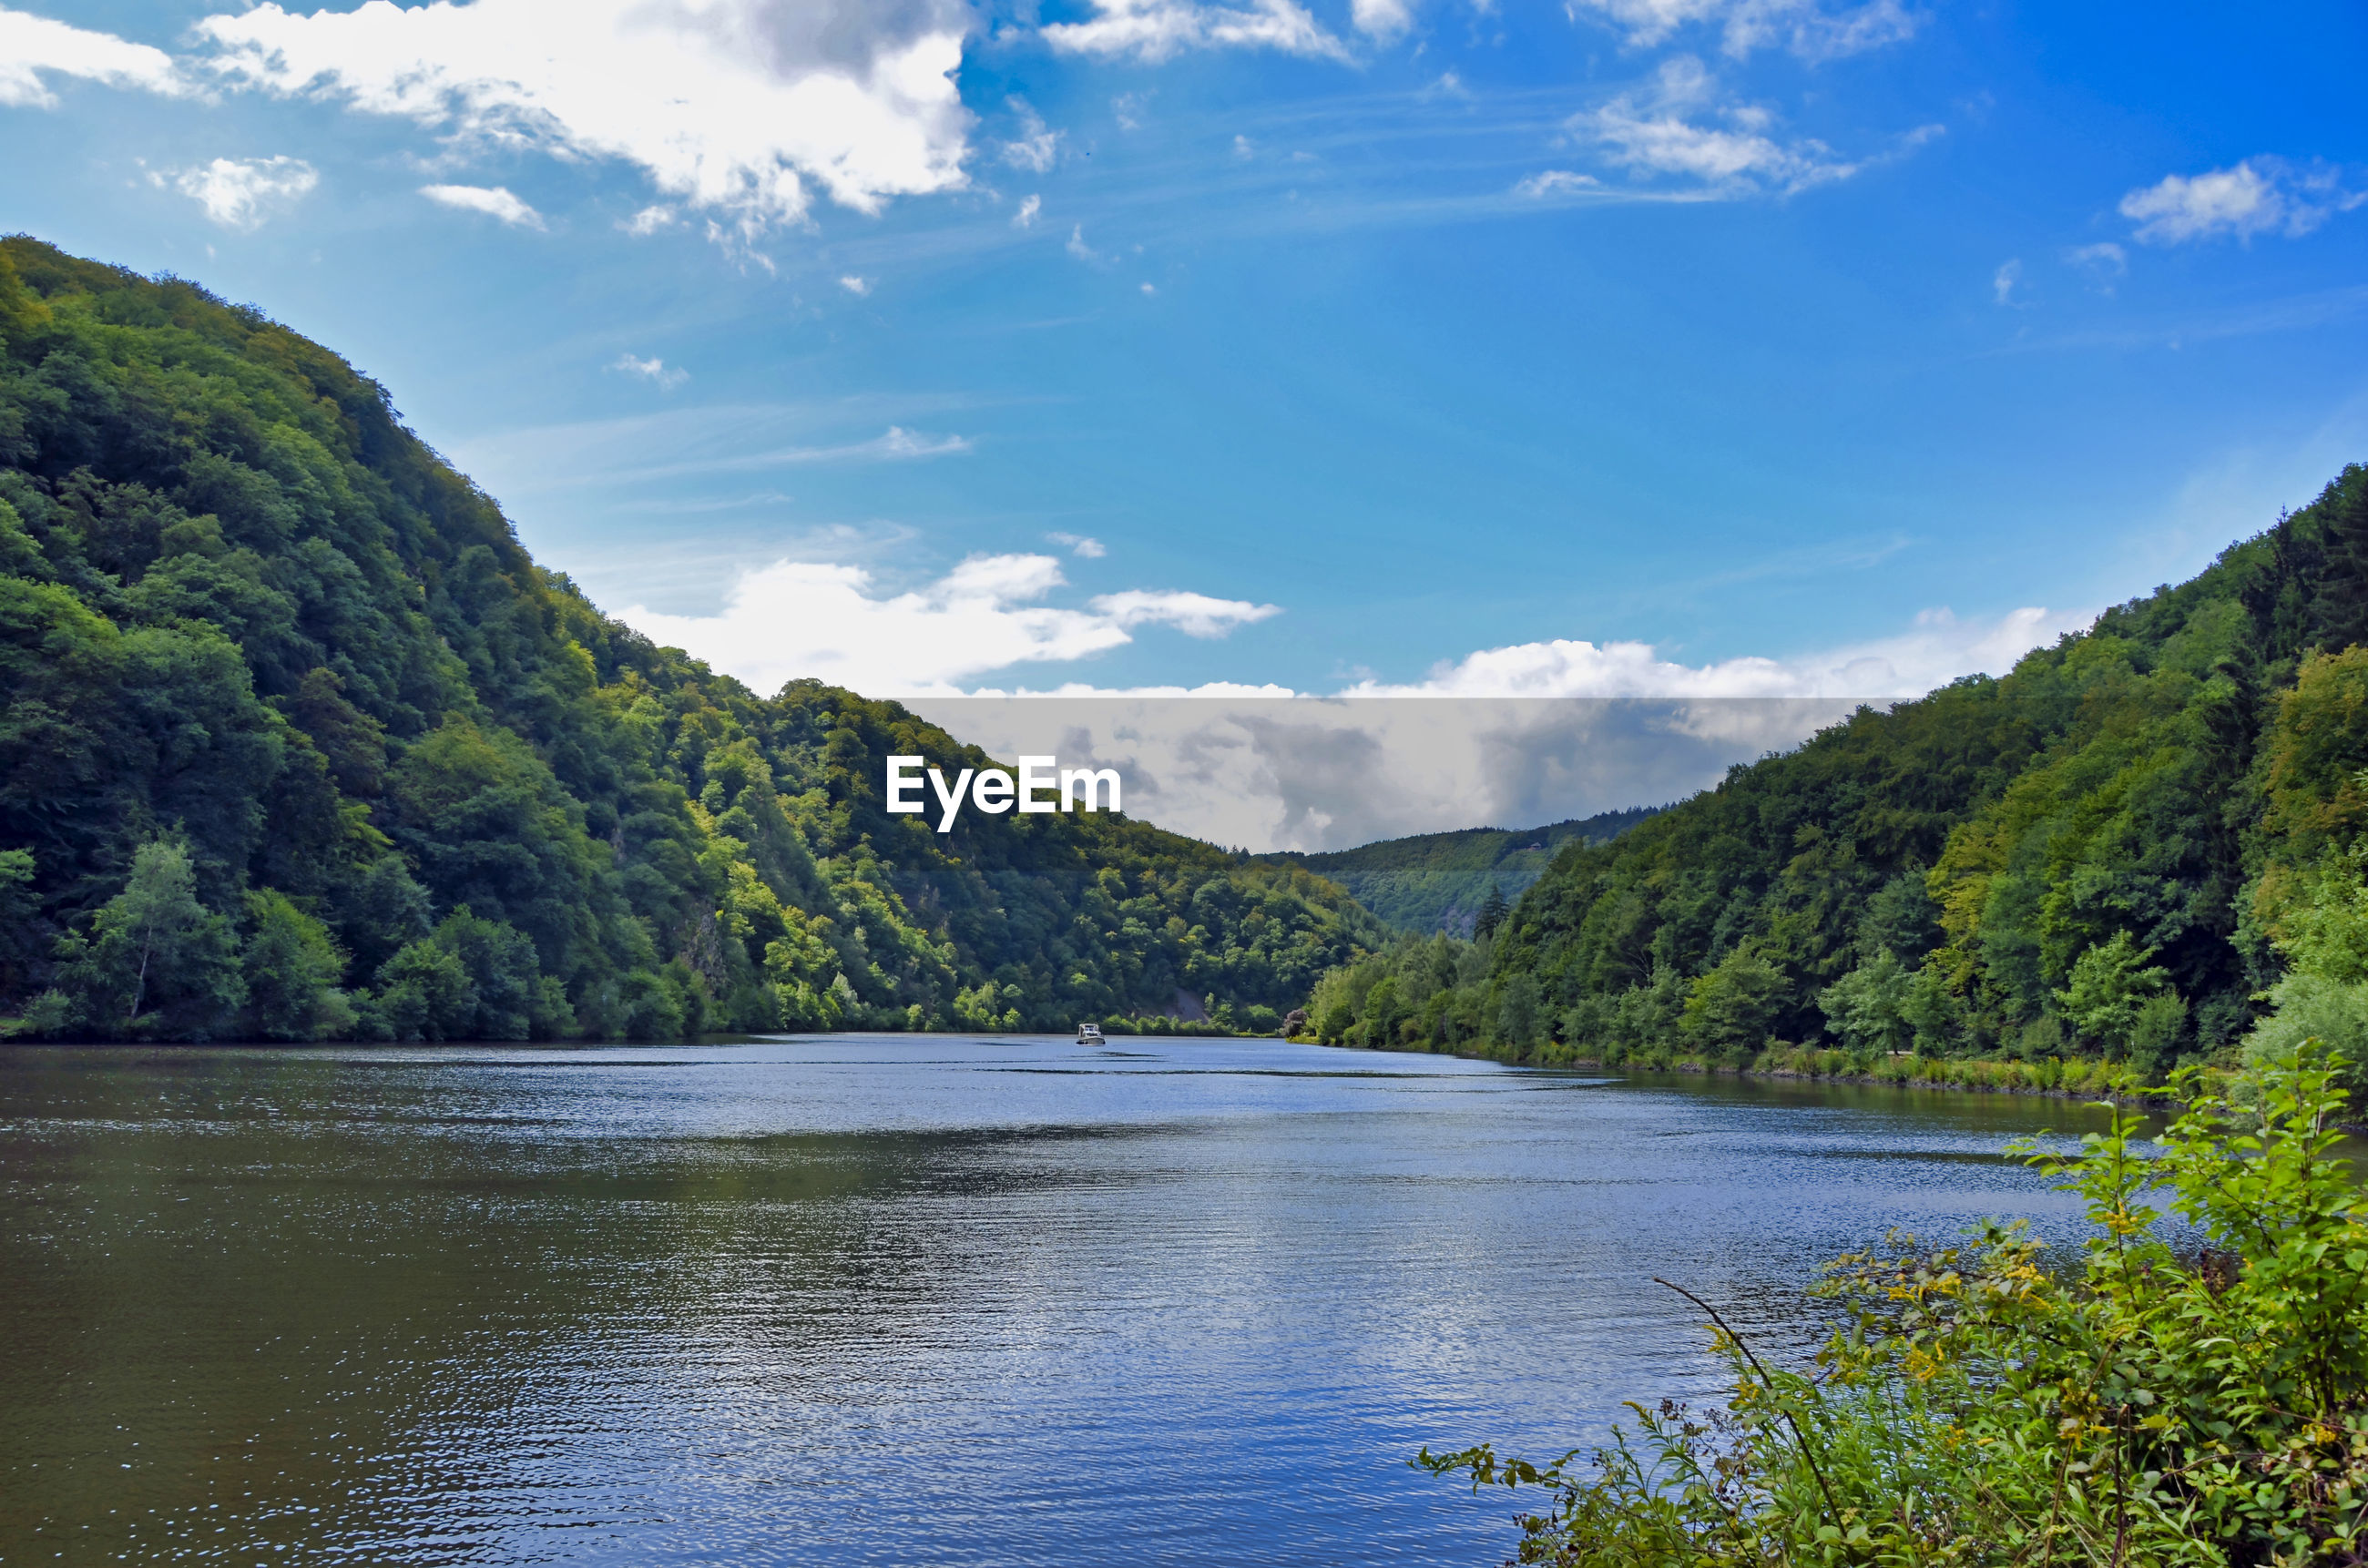 Nature and technology along the saar river